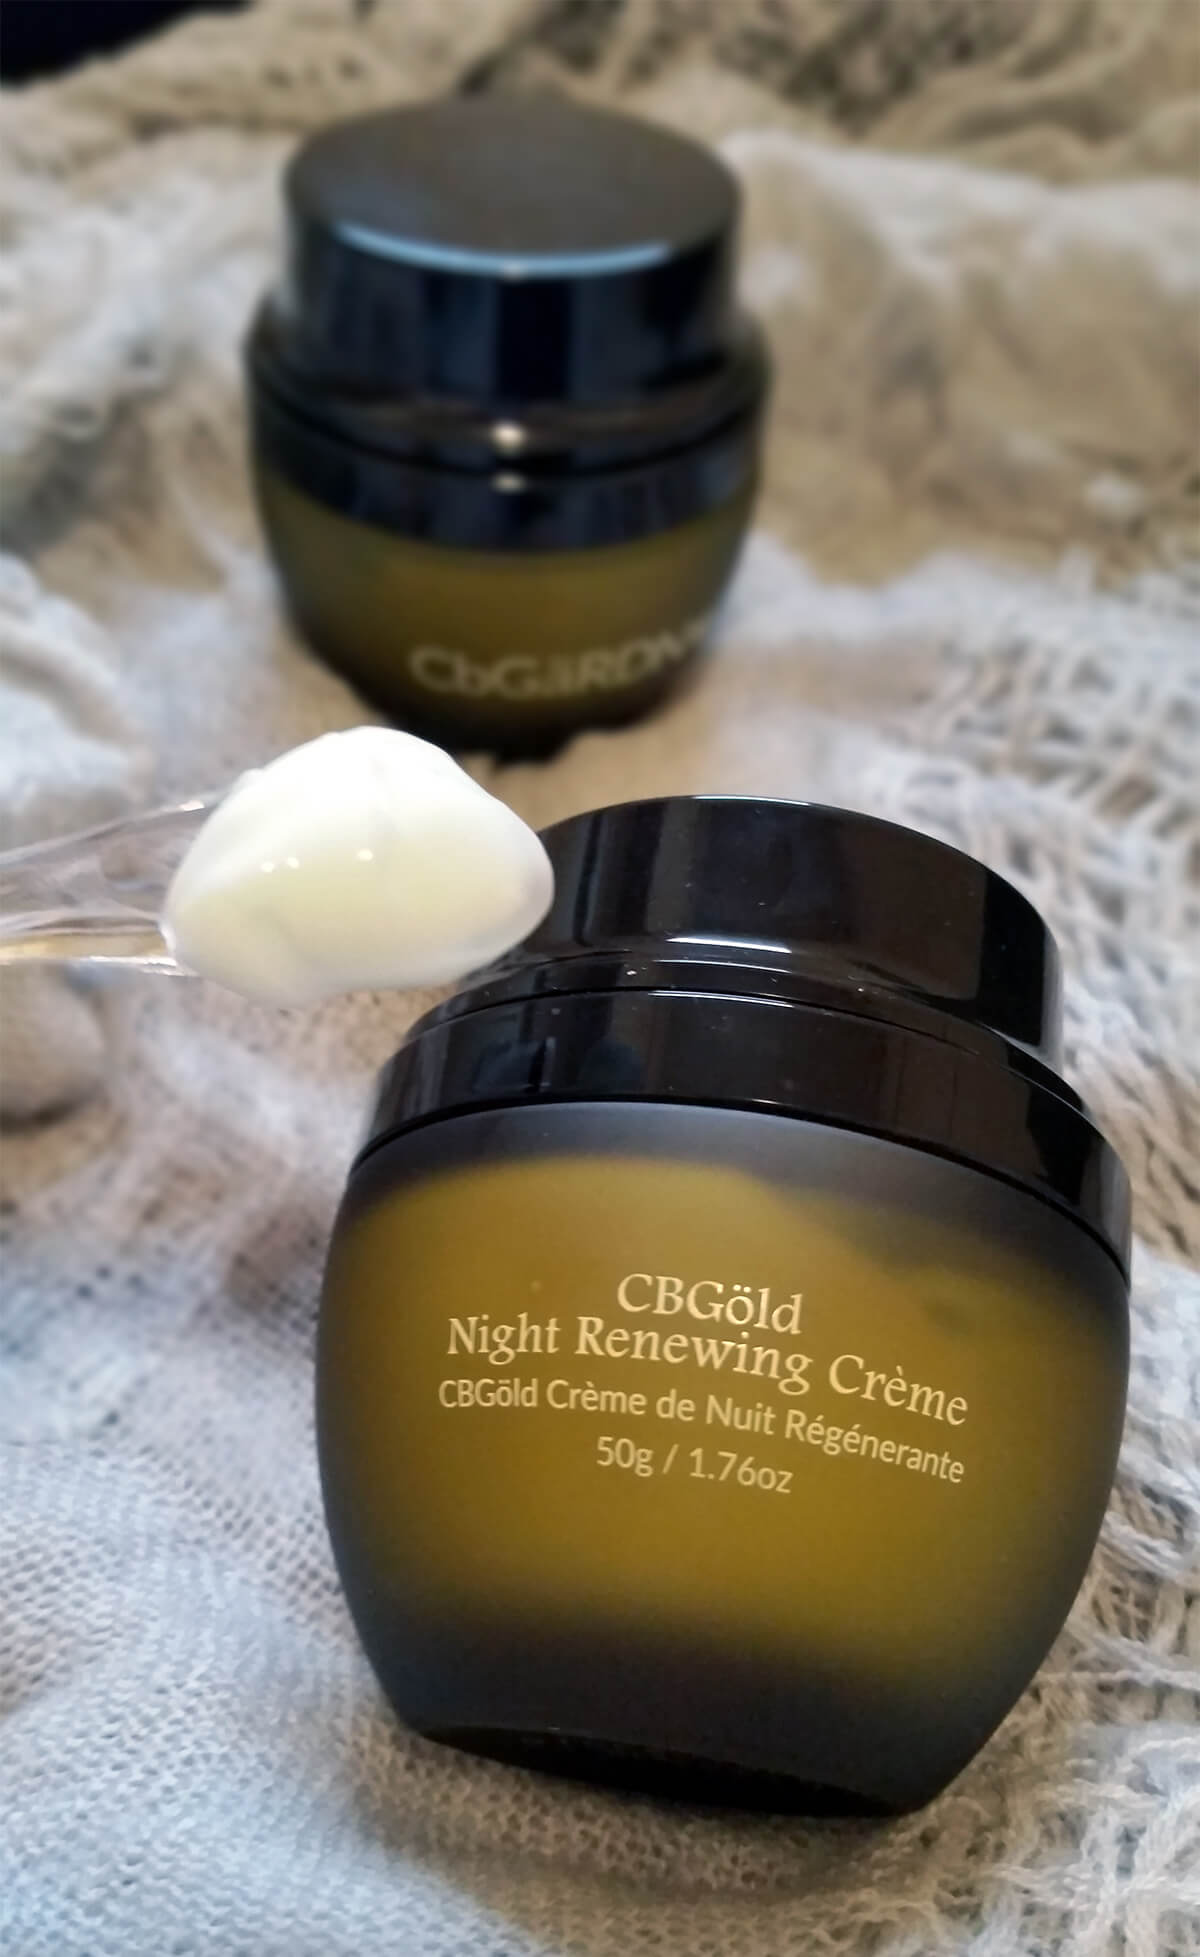 CBGold Night Renewing Creme with product on applicator